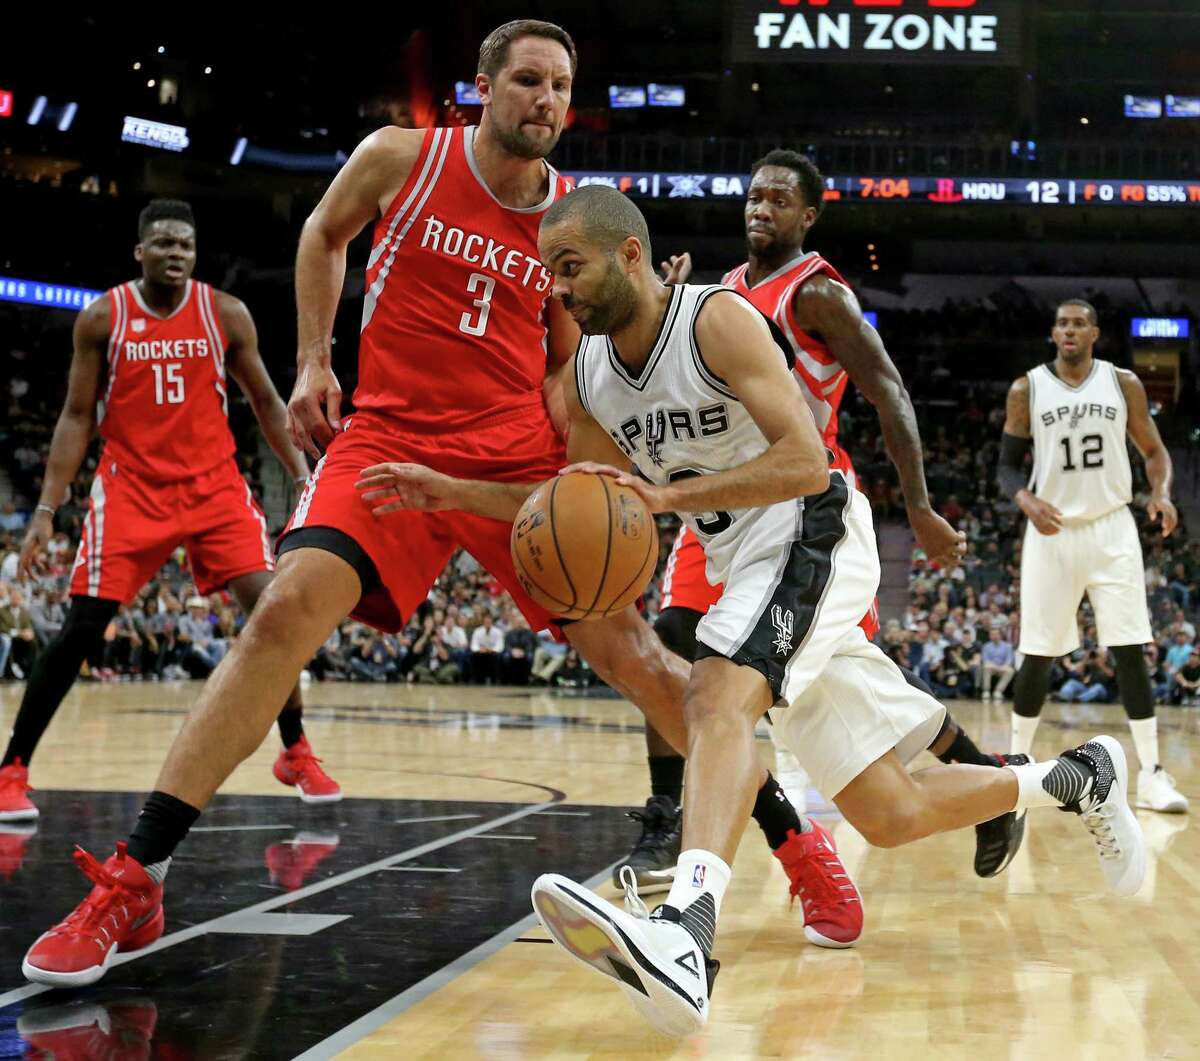 San Antonio Spurs' Tony Parker looks for room around Houston Rockets?• Ryan Anderson during first half action Monday March 6, 2017 at the AT&T Center.